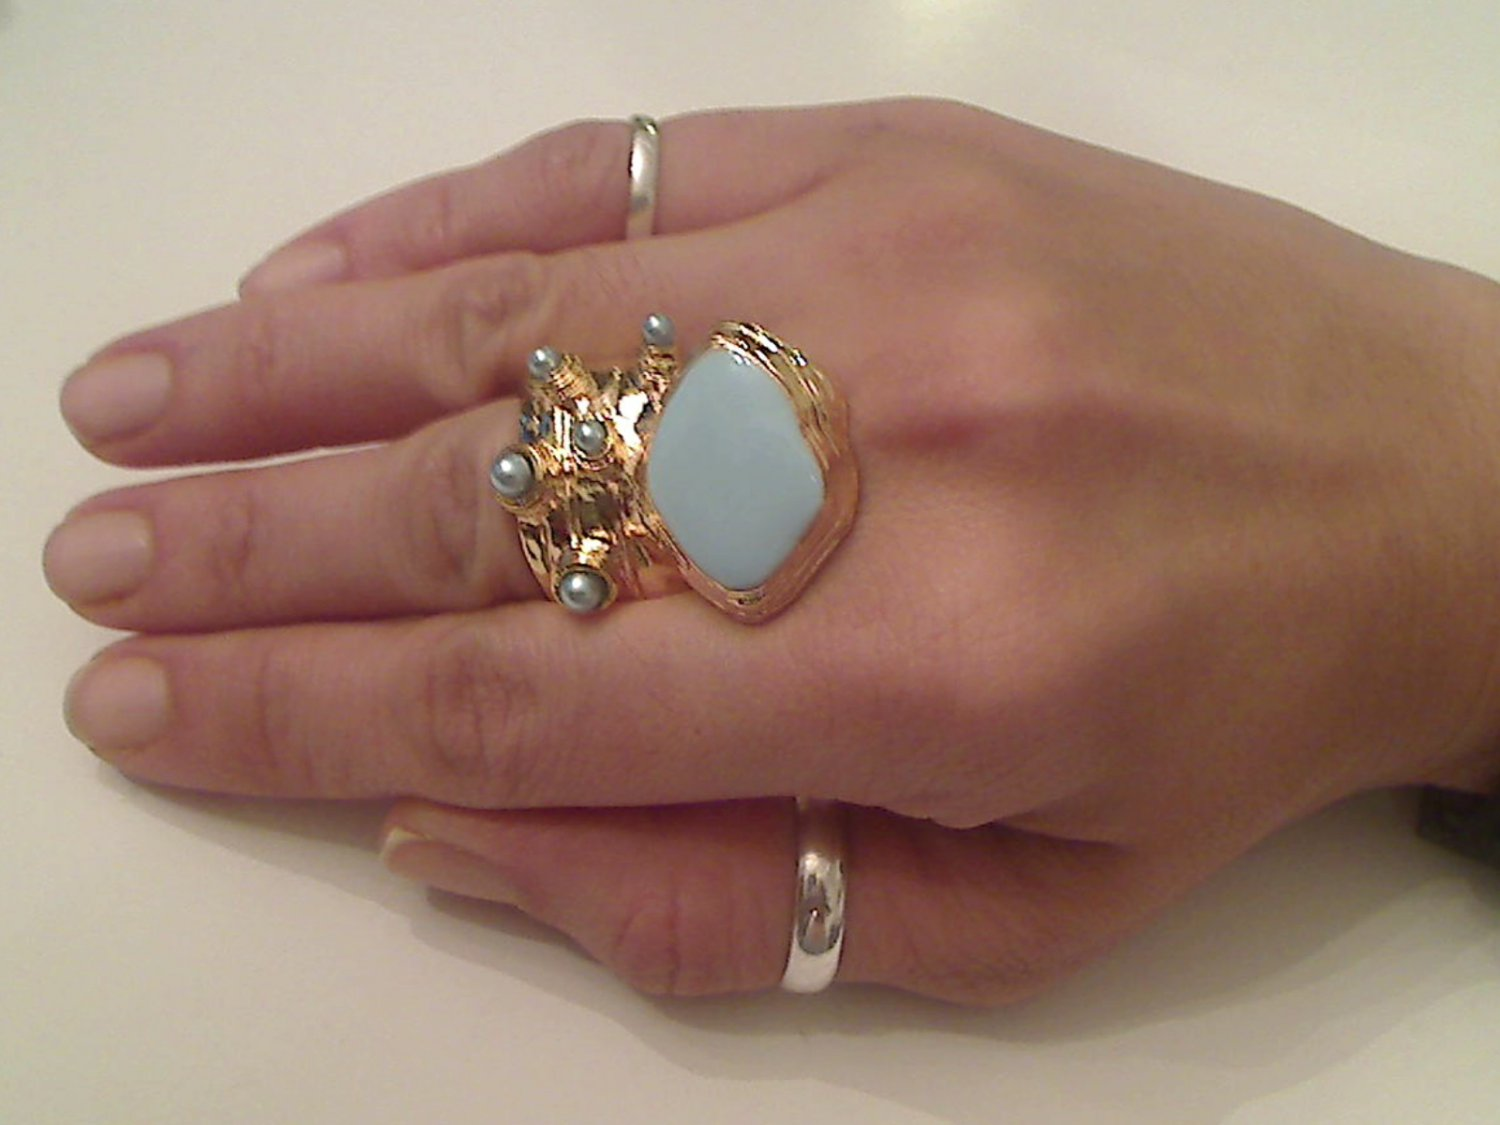 BABY BLUE ARTY CHUNKY SPIKEY KNUCKLE RING IN GOLD